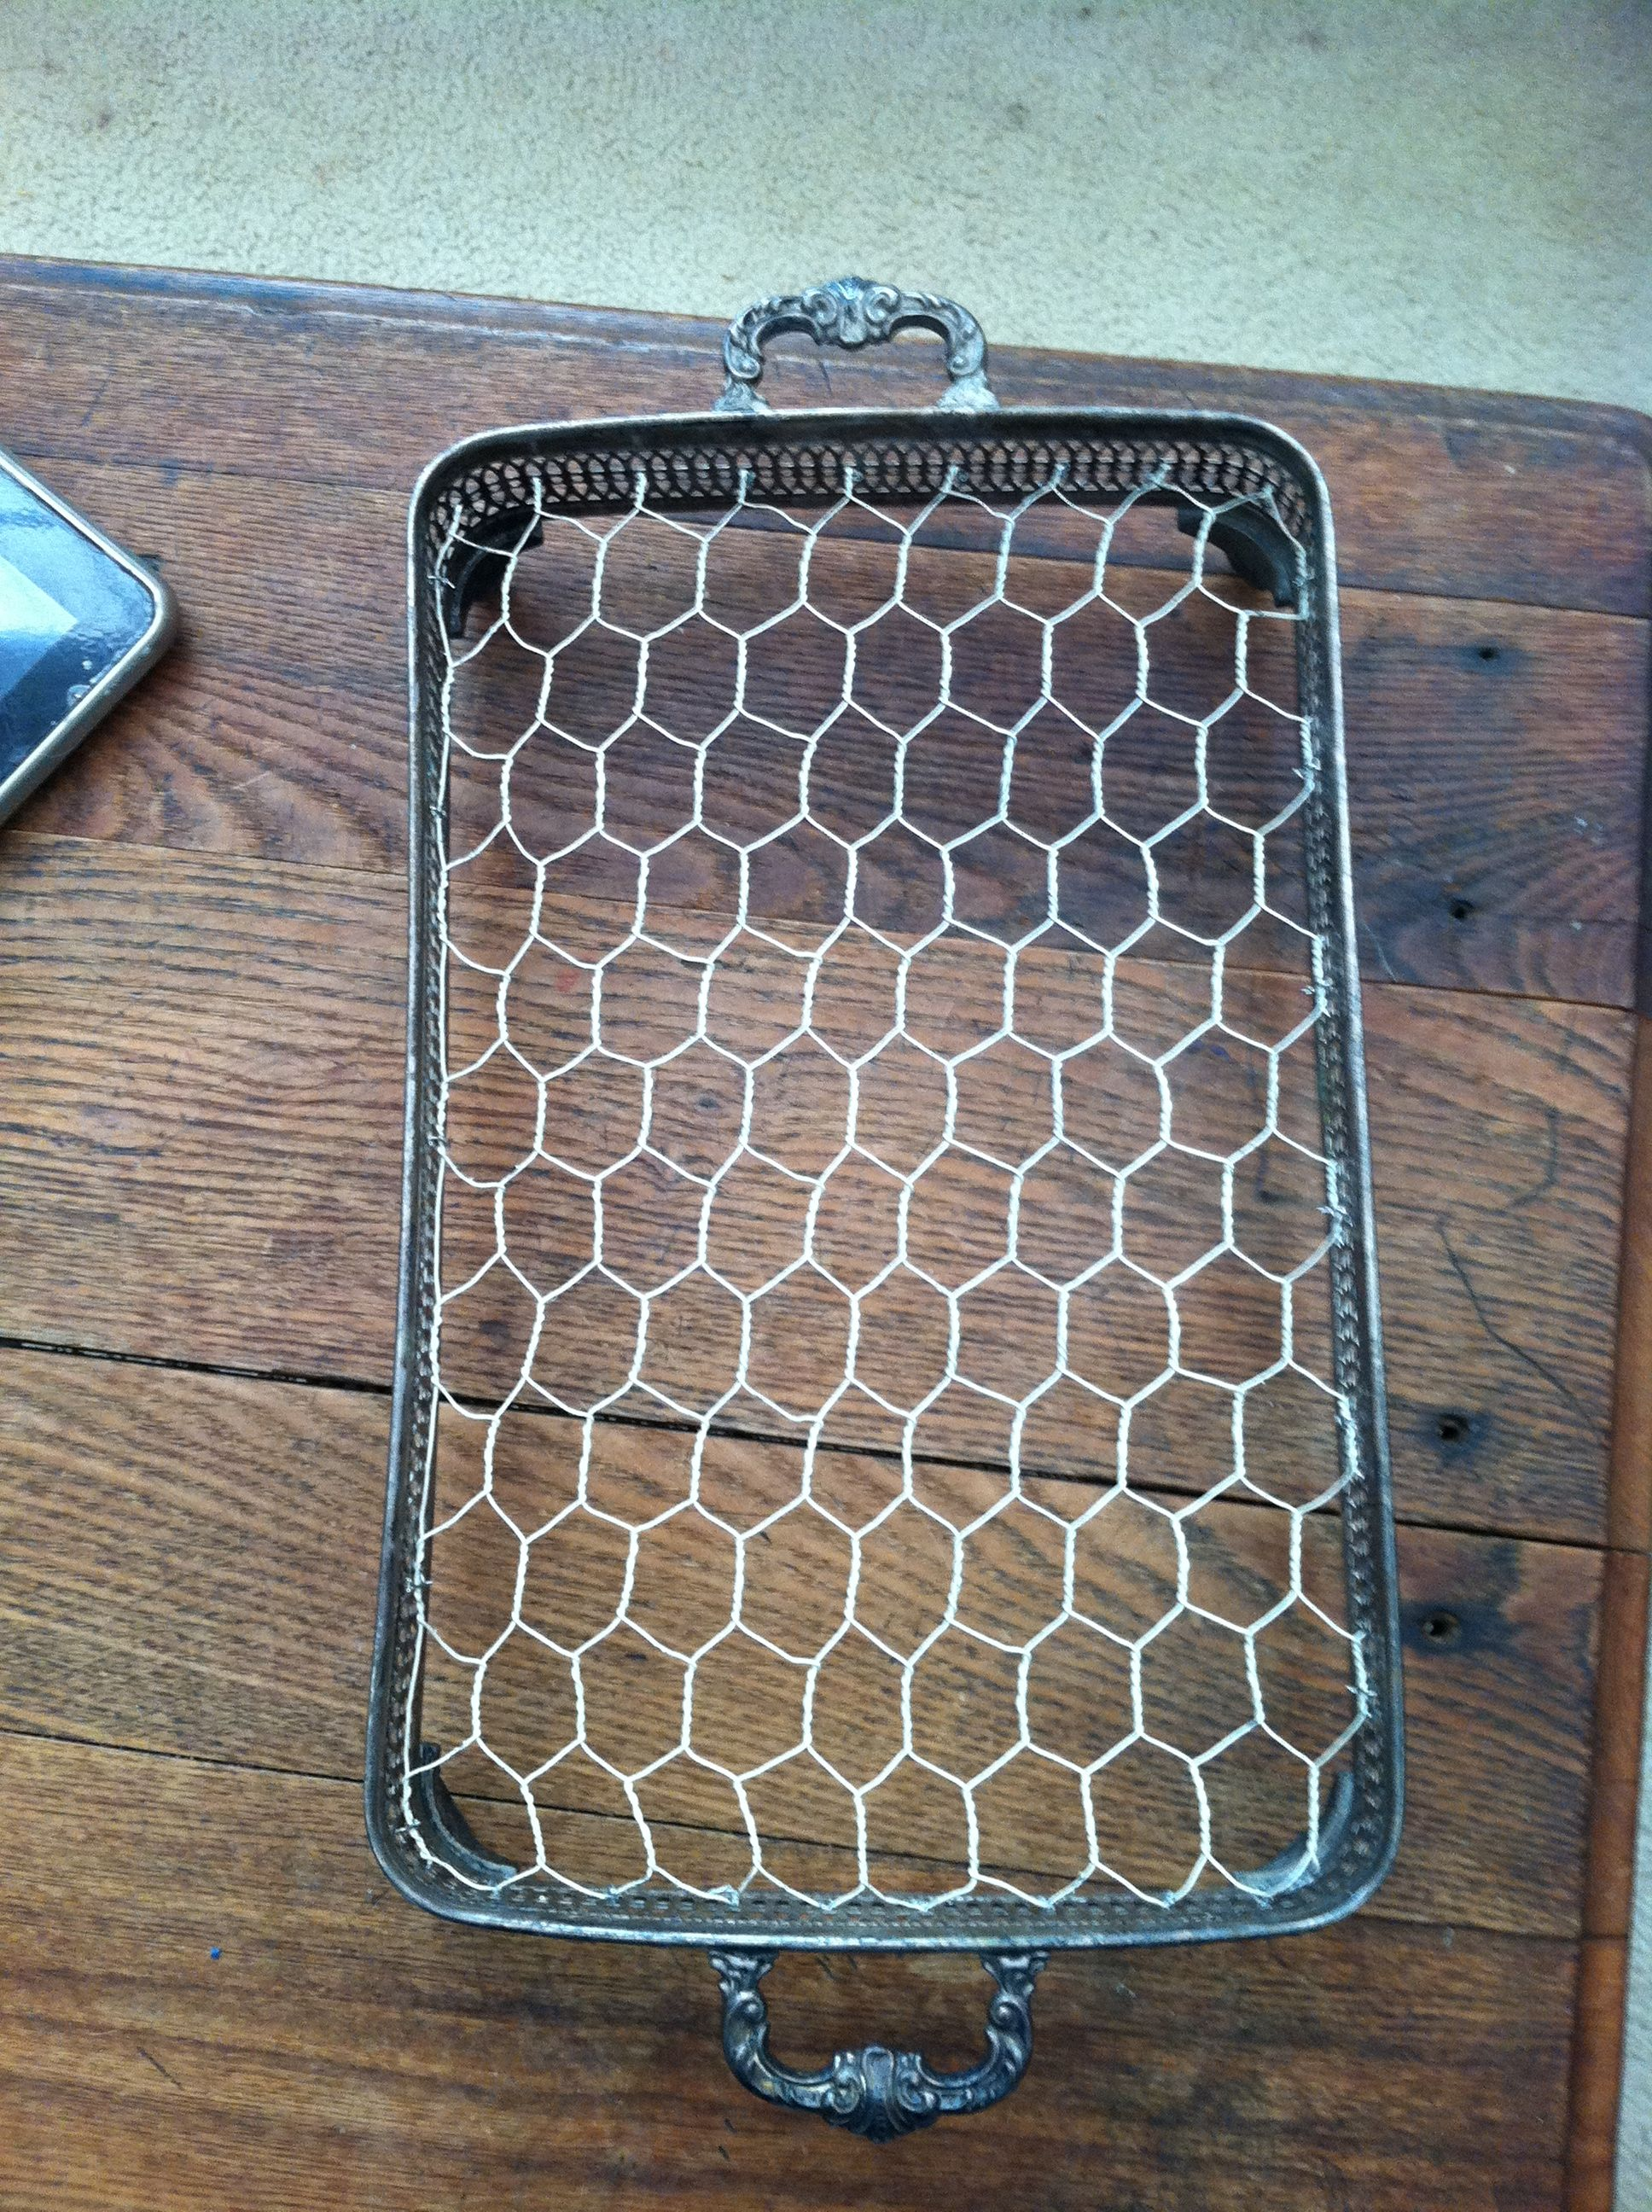 I love chicken wire crafts crafts pinterest crafts for Chicken wire craft ideas